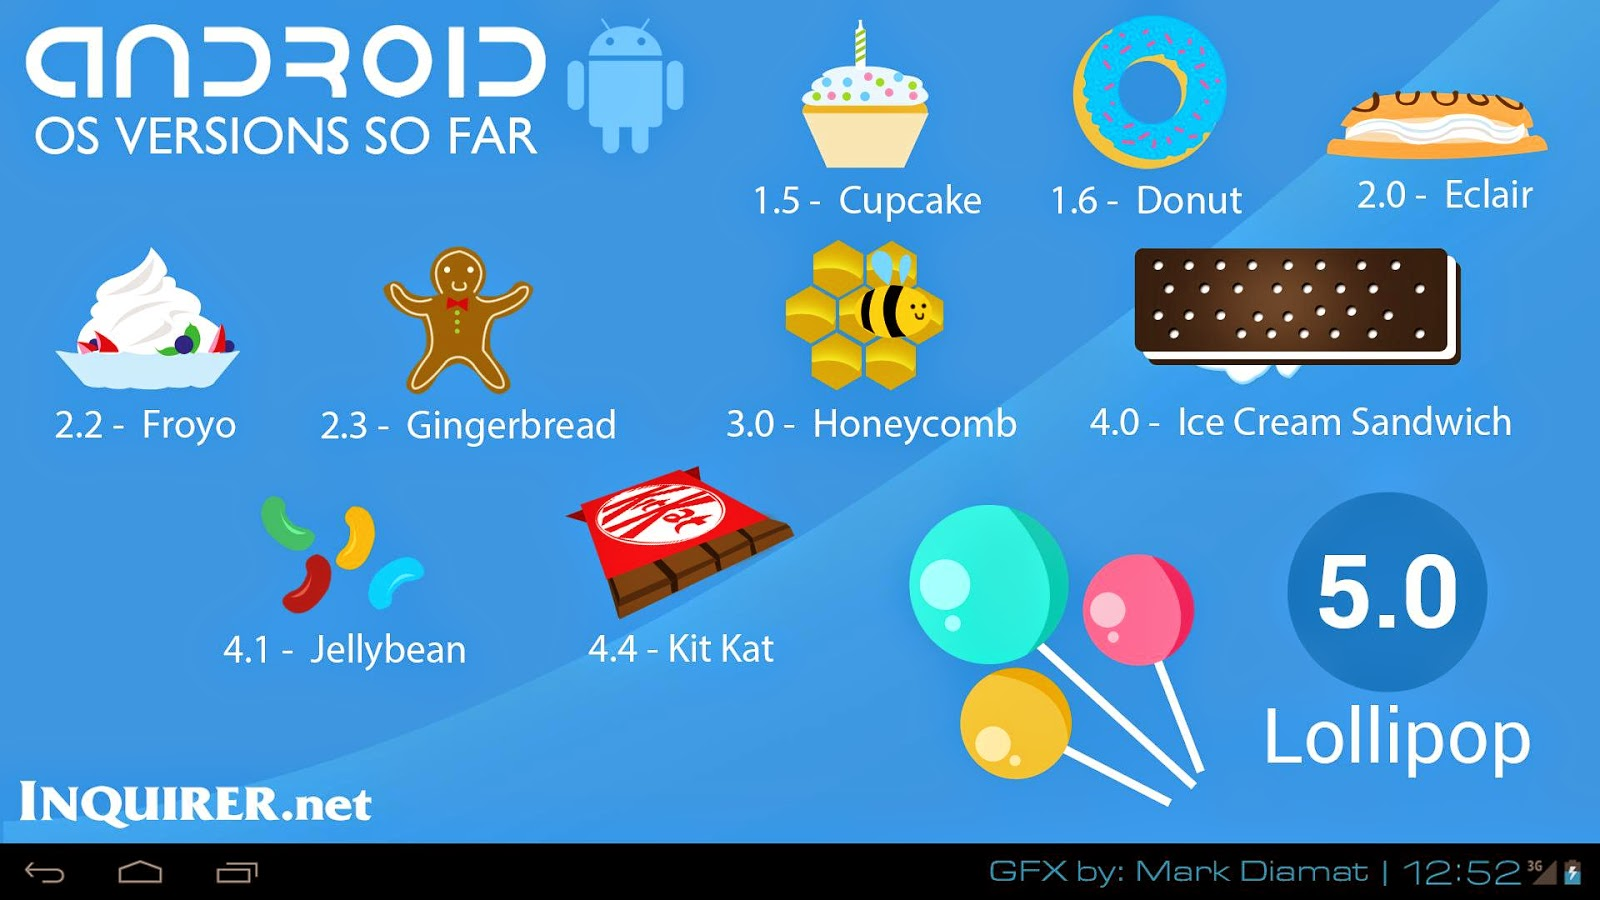 Cara Install Android Lollipop 5.0 di PC